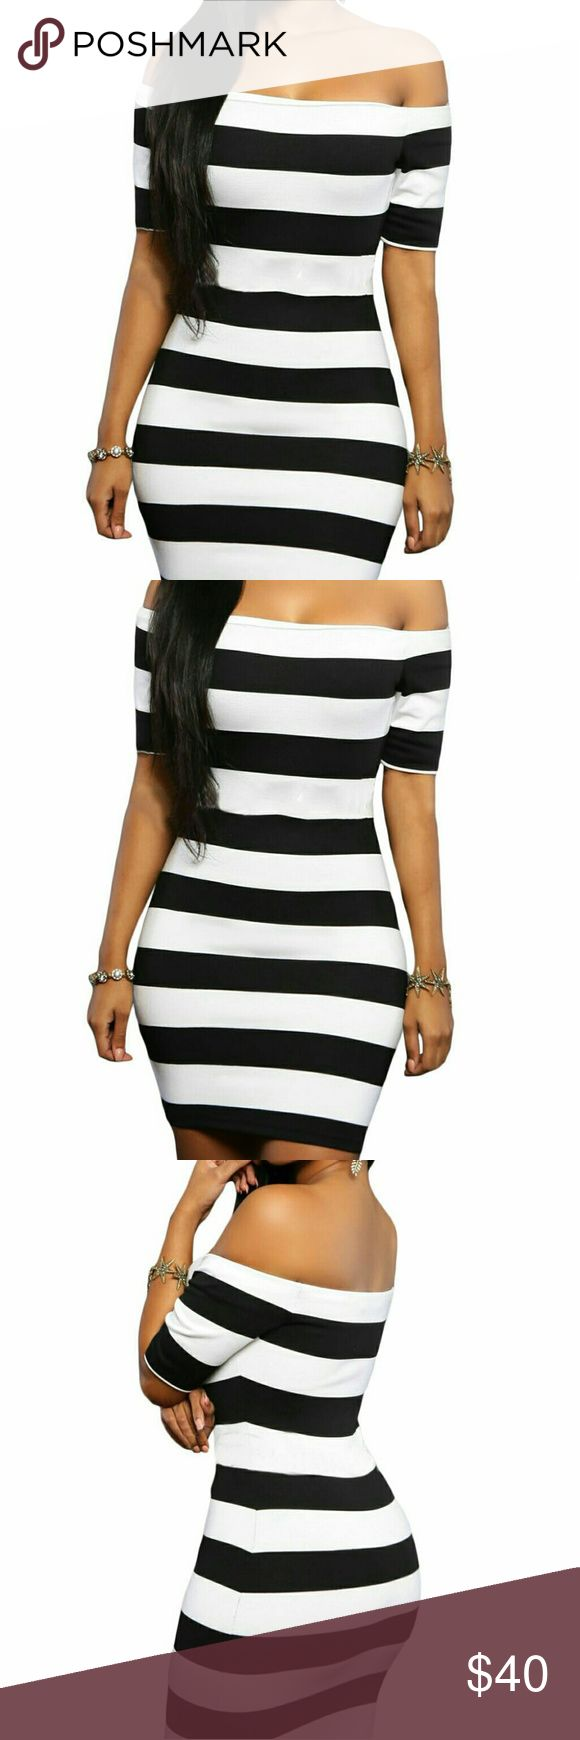 Striped Mini Dress Make a bold statement in this sexy mini dress featuring off shoulder design, contrasting stripes and half sleeves. Cut at ultrashort length in curve-hugging fit. This is made of stretchy poly blend, so has lots of give but always accentuating the figure! This dress is perfect for that dressy occasion.  B-40 Dresses Mini